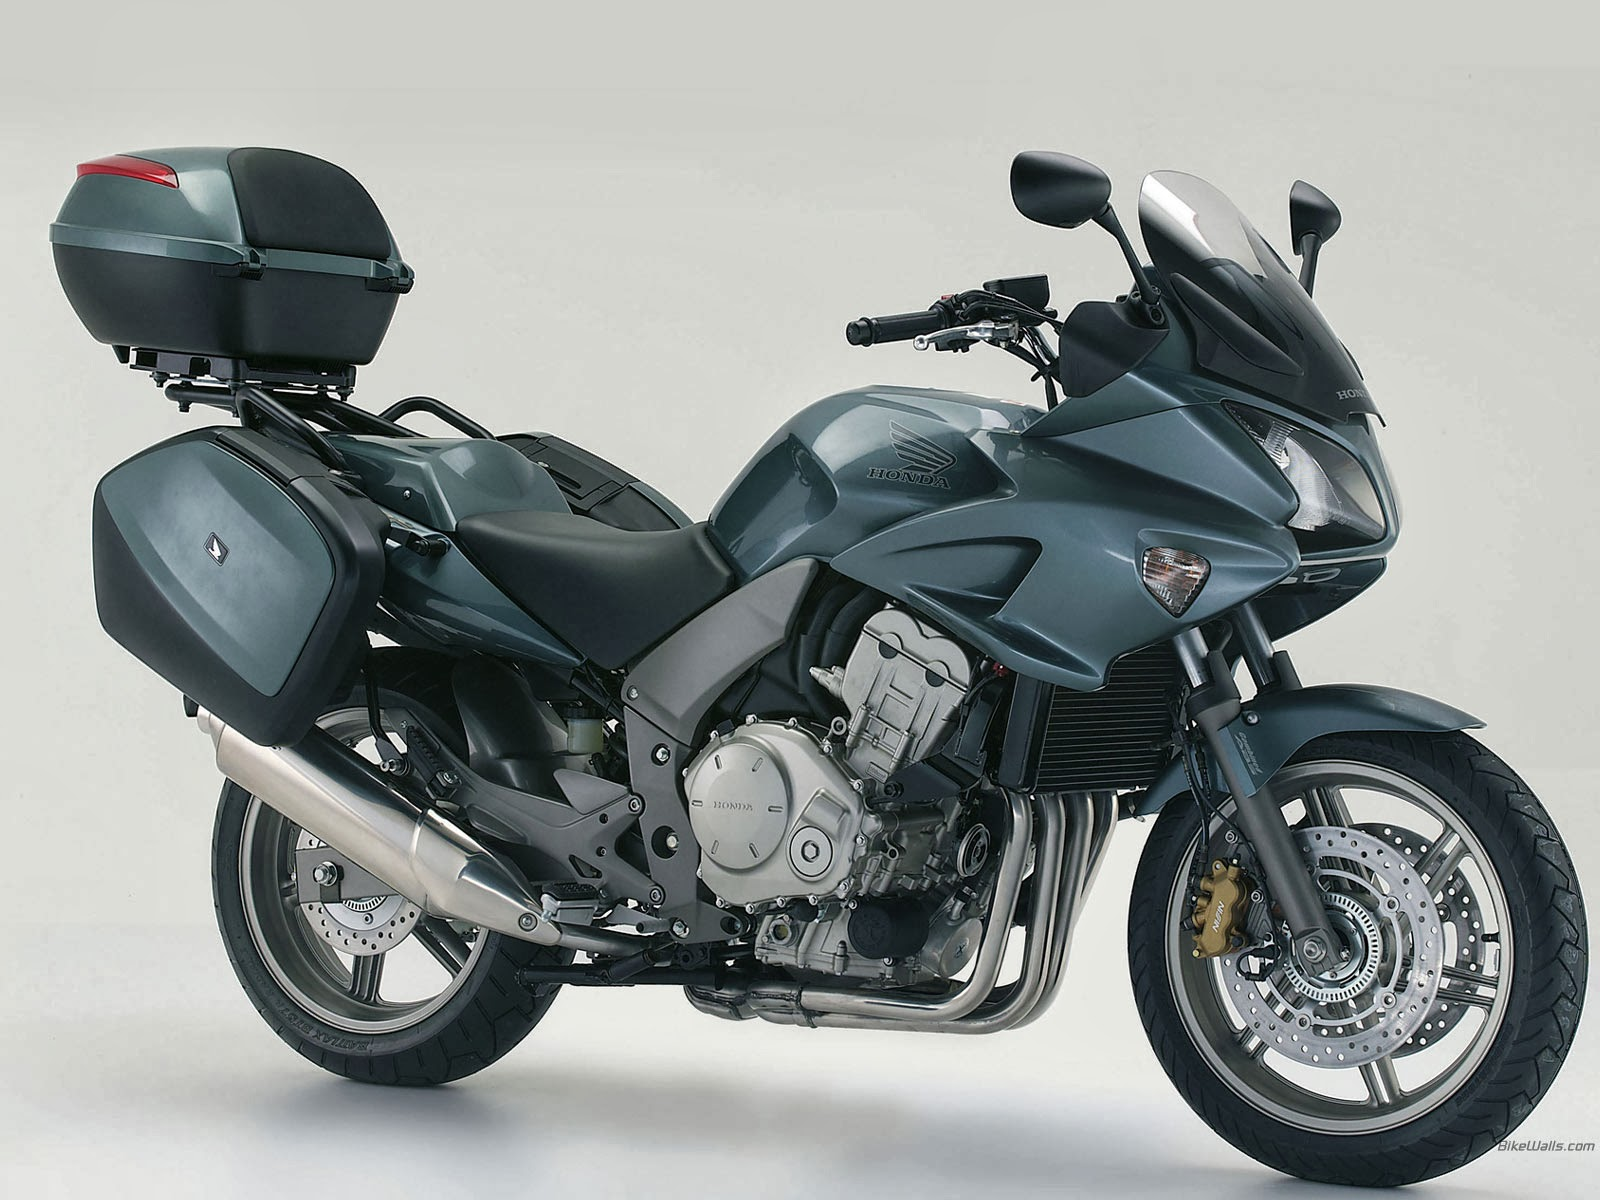 honda cbf 1000 honda motor. Black Bedroom Furniture Sets. Home Design Ideas